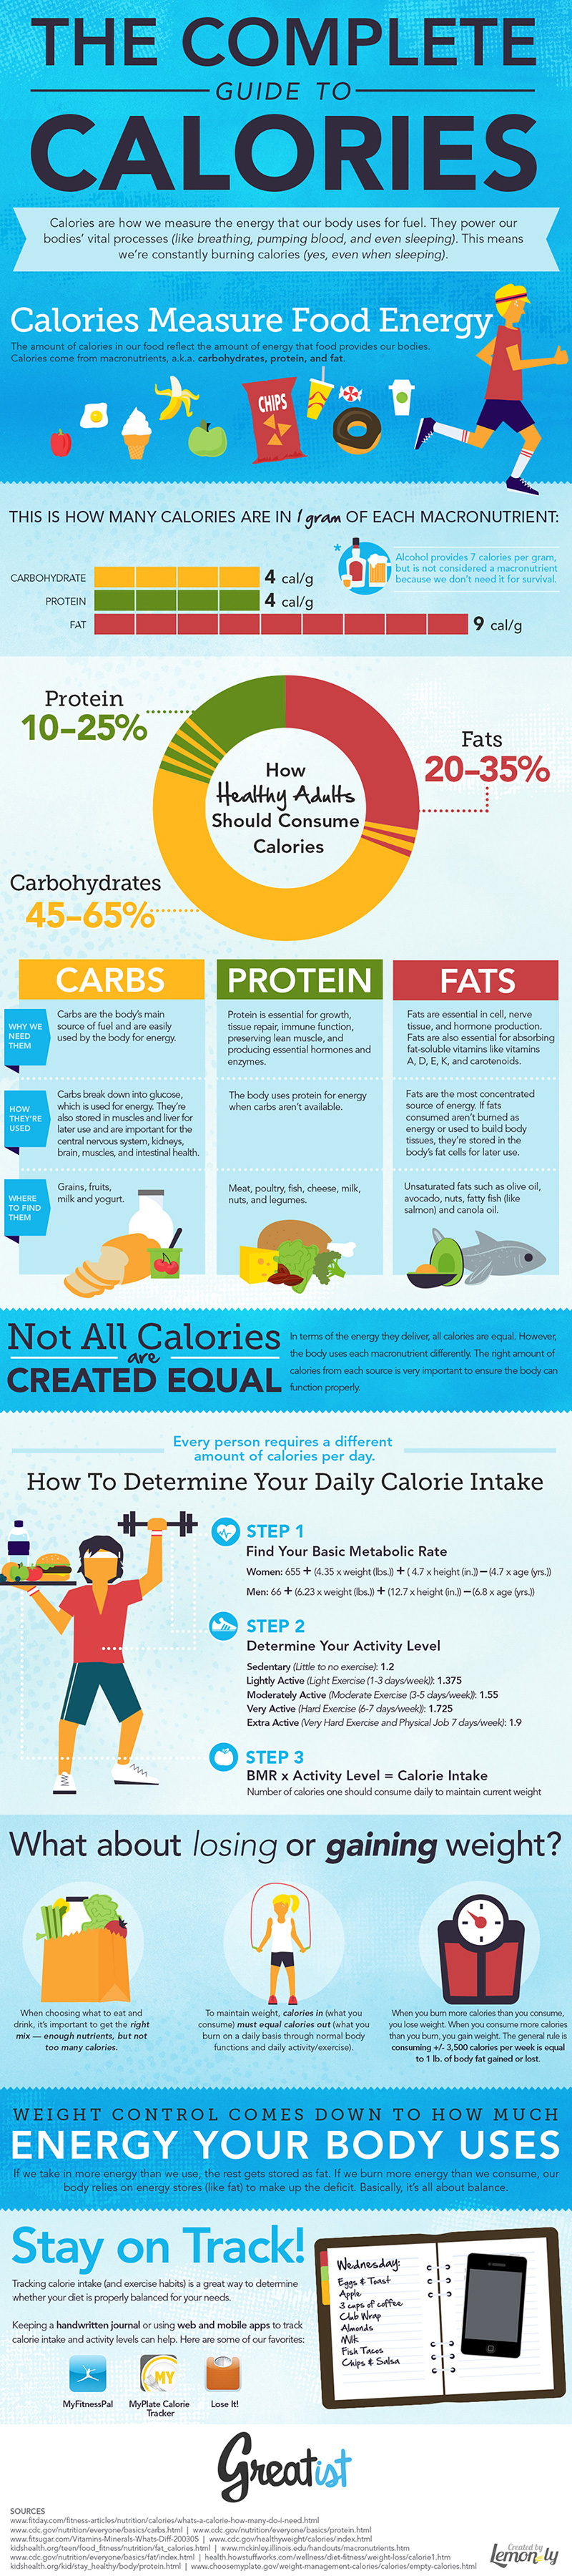 Top Myths About Calories BUSTED!